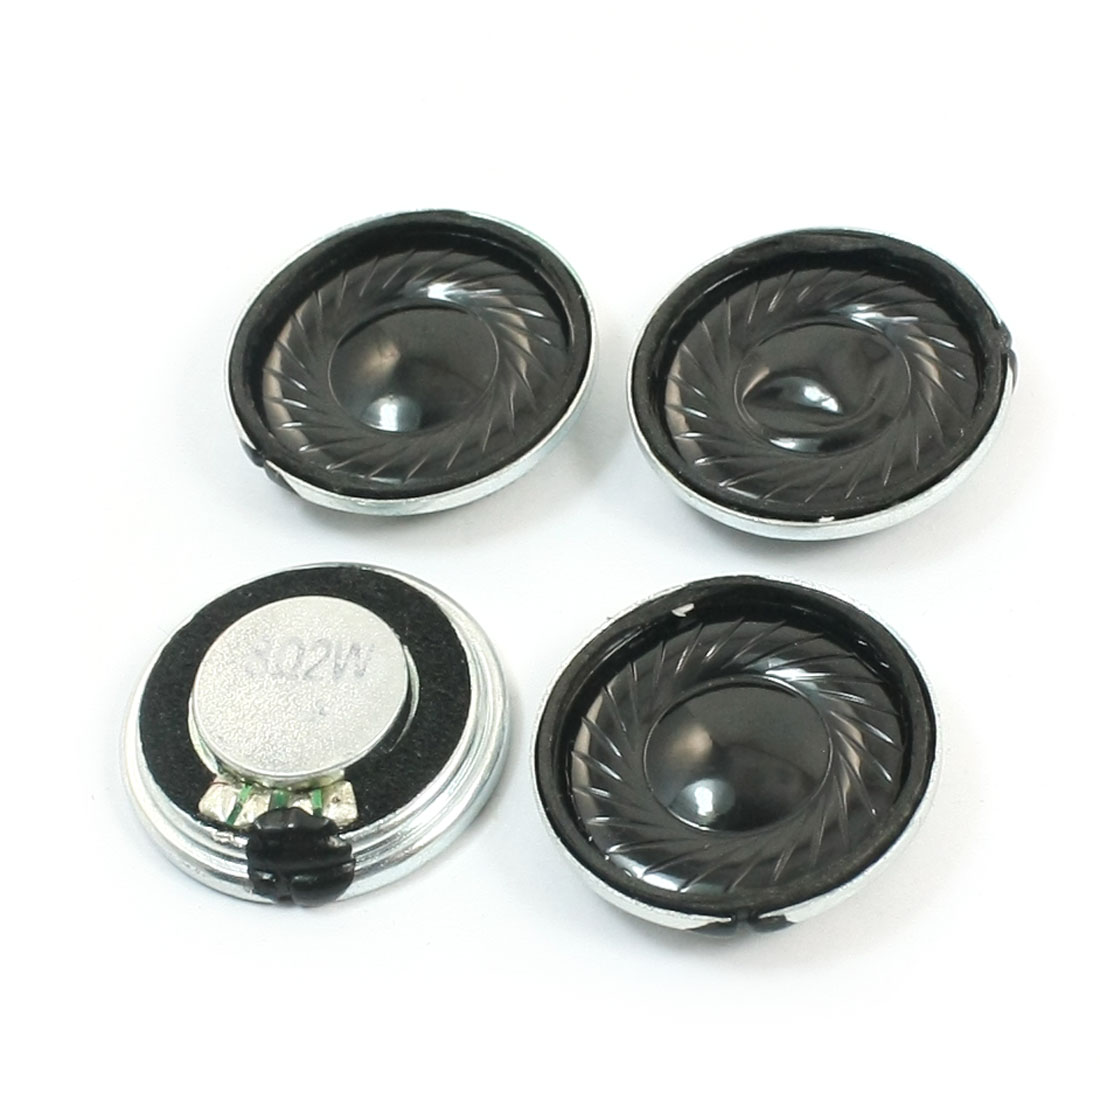 4 Pcs 2W 8 Ohm 23mm Dia Round Metal Shell Internal Magnet DVD/EVD Music Player Audio Speaker Loudspeaker Amplifier